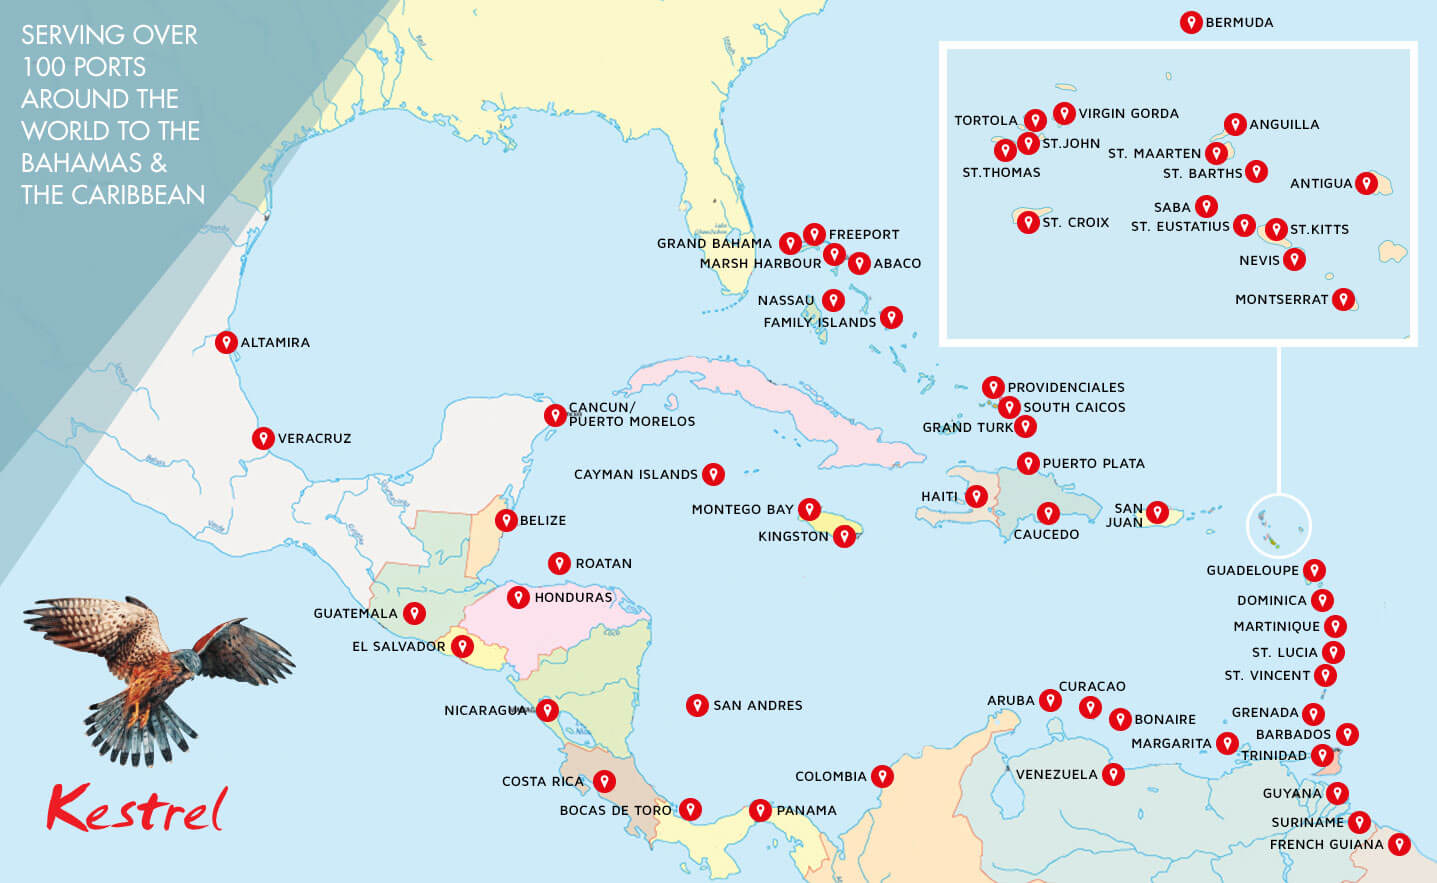 Map showing locations of Caribbean ports served by Kestrel Caribbean Shipping services